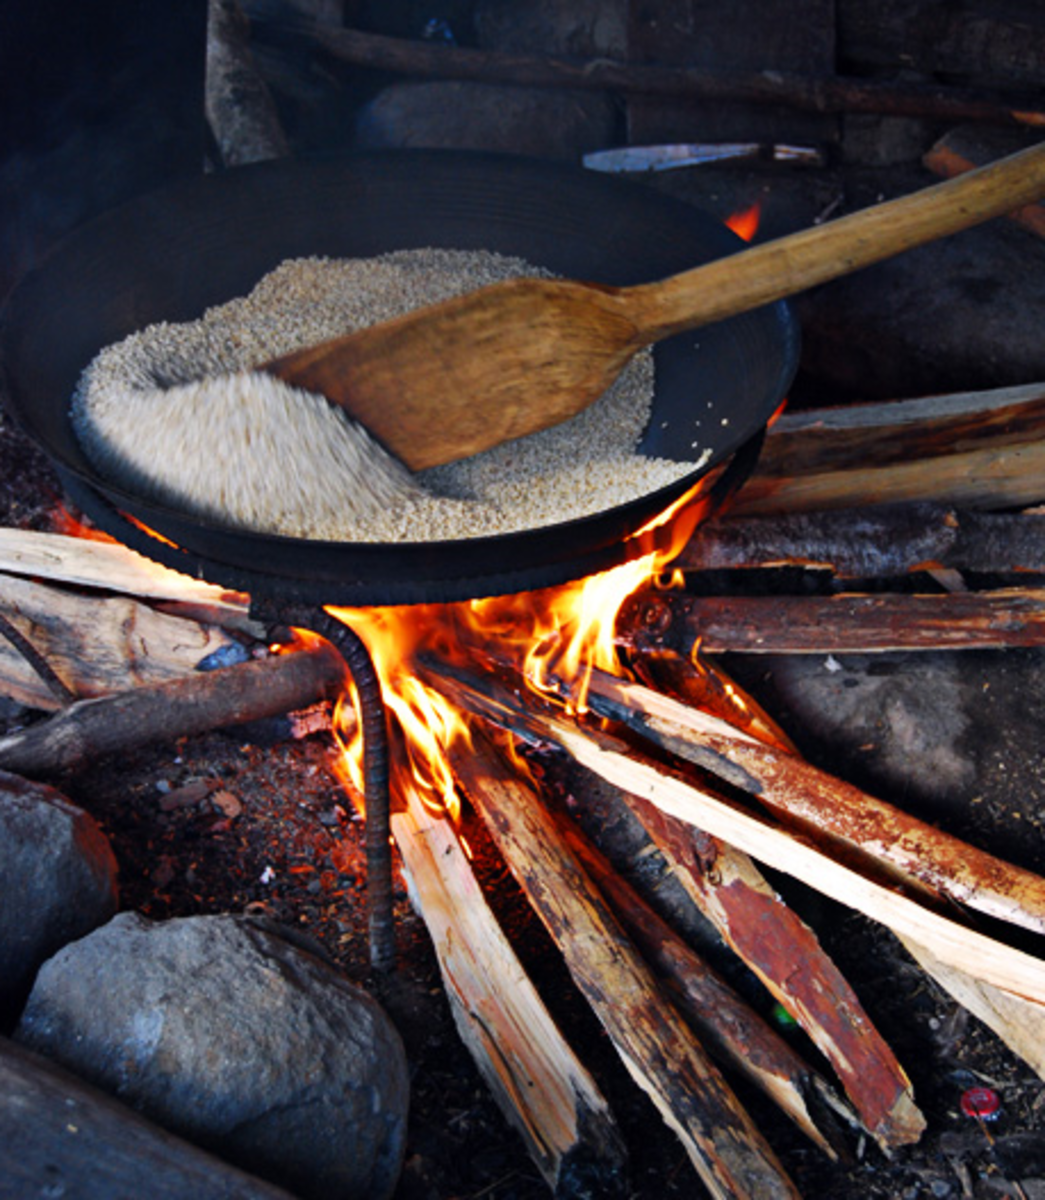 Roasting the rice in a large wok and stir continuously with a wooden paddle to avoid burning (Image Credit: AkosiSuperEdwinK from pinoyphotography.org)